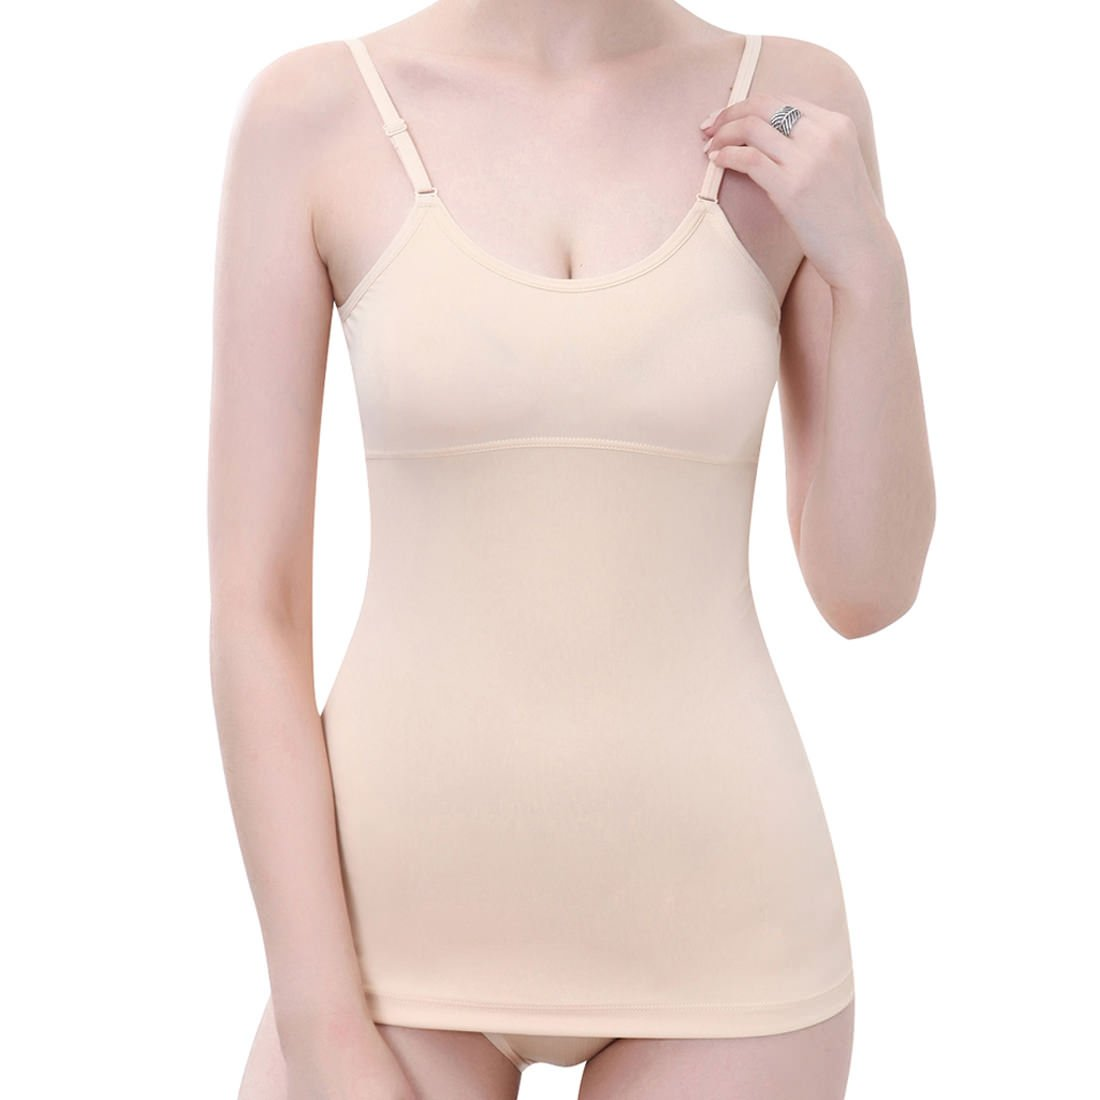 Everbellus Body Shaper Cami Vest Tummy Control Shapewear Tops for Women C33F